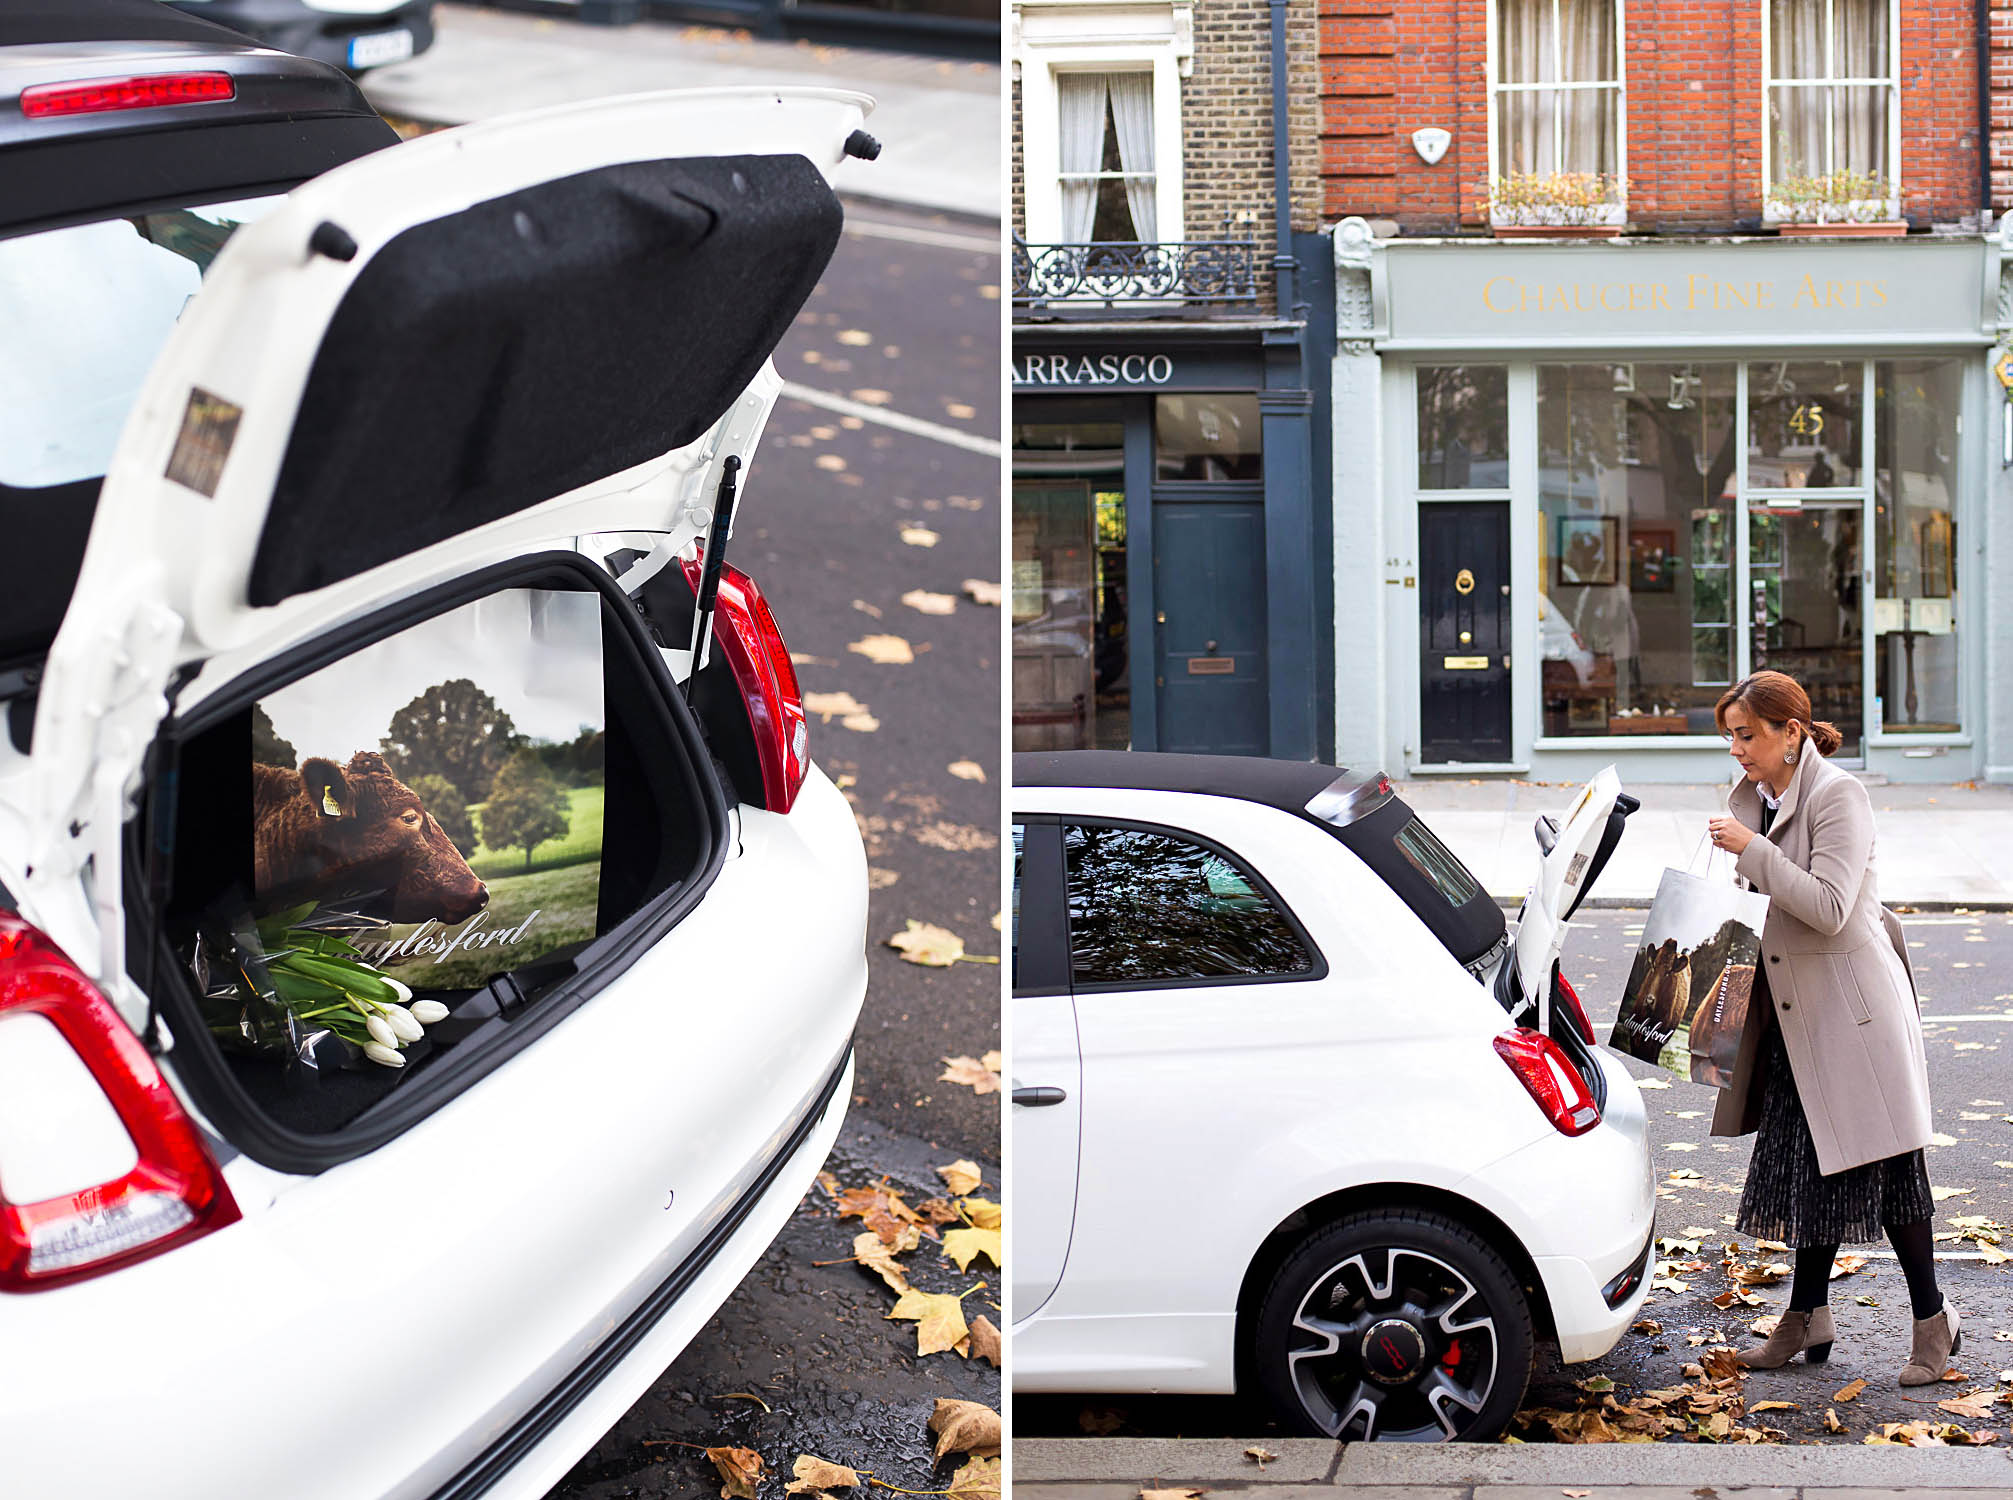 Driving the Fiat 500 S Convertible TwinAir city car in London